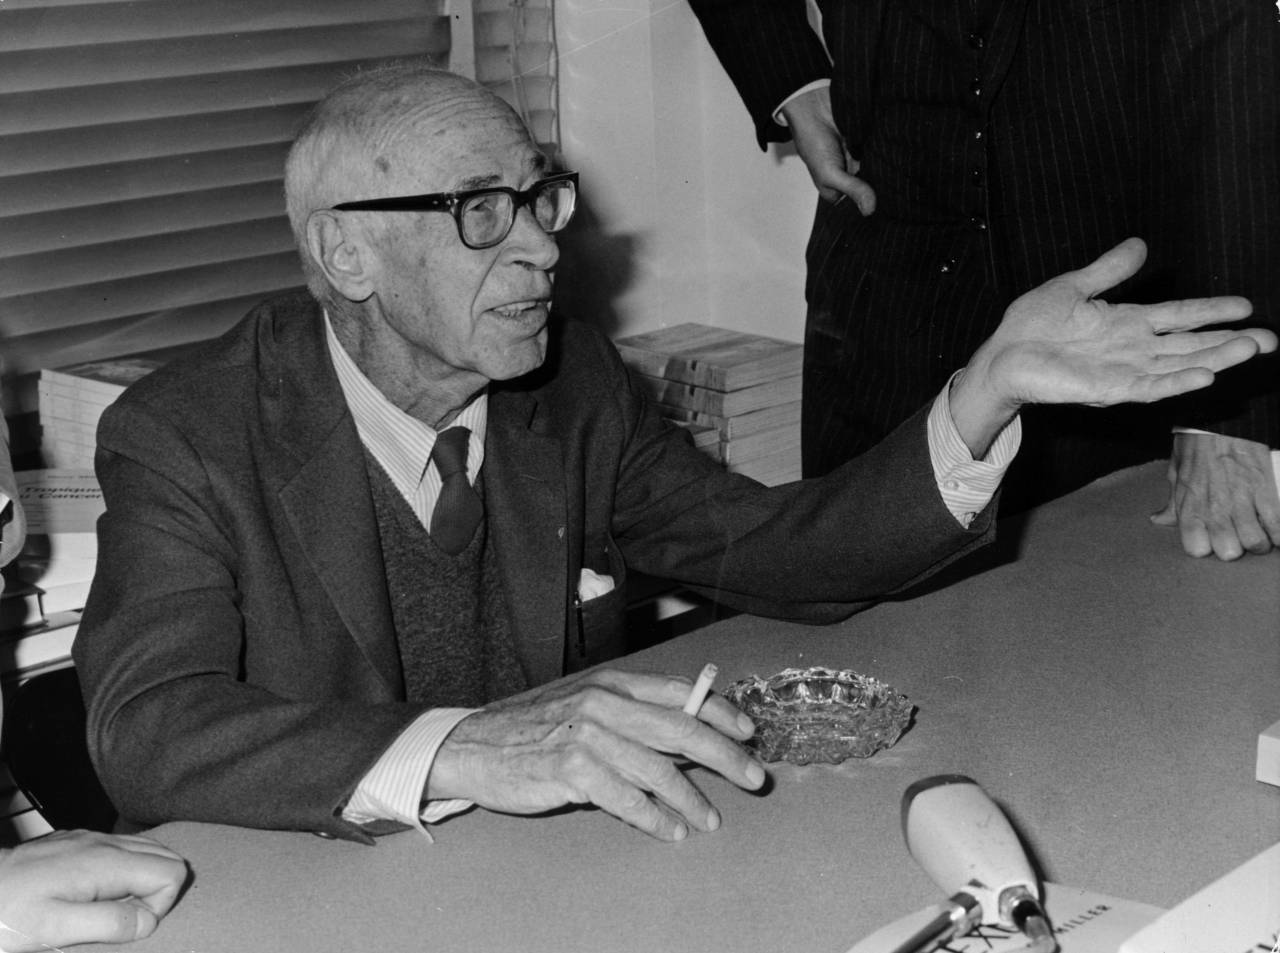 22nd September 1967:  Author Henry Miller (1891 - 1980) at the Daniel Gervis Gallery, Rue du Bac, Paris where his paintings and engravings, which he produced in his later years, are on show.  (Photo by Keystone/Getty Images)